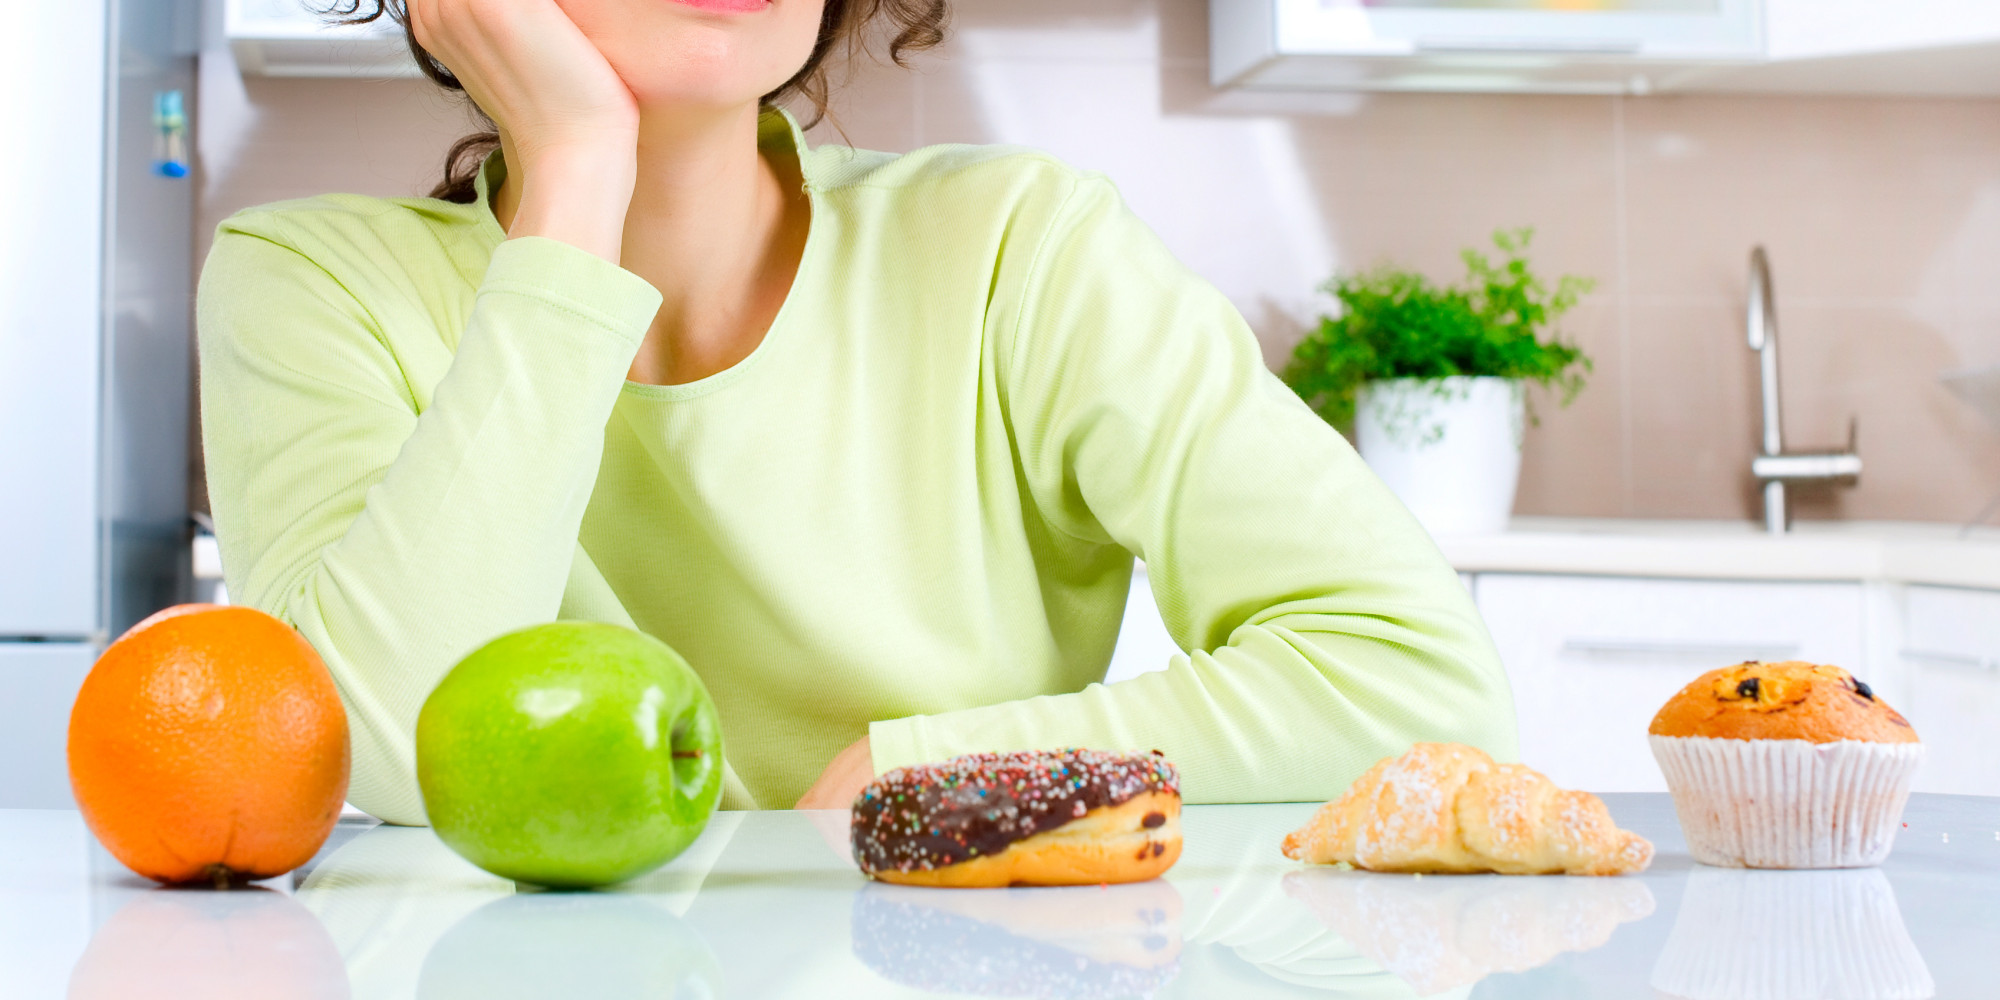 What To Eat For Fast Weight Loss Confused About What To Eat 8 Strategies For Healthy